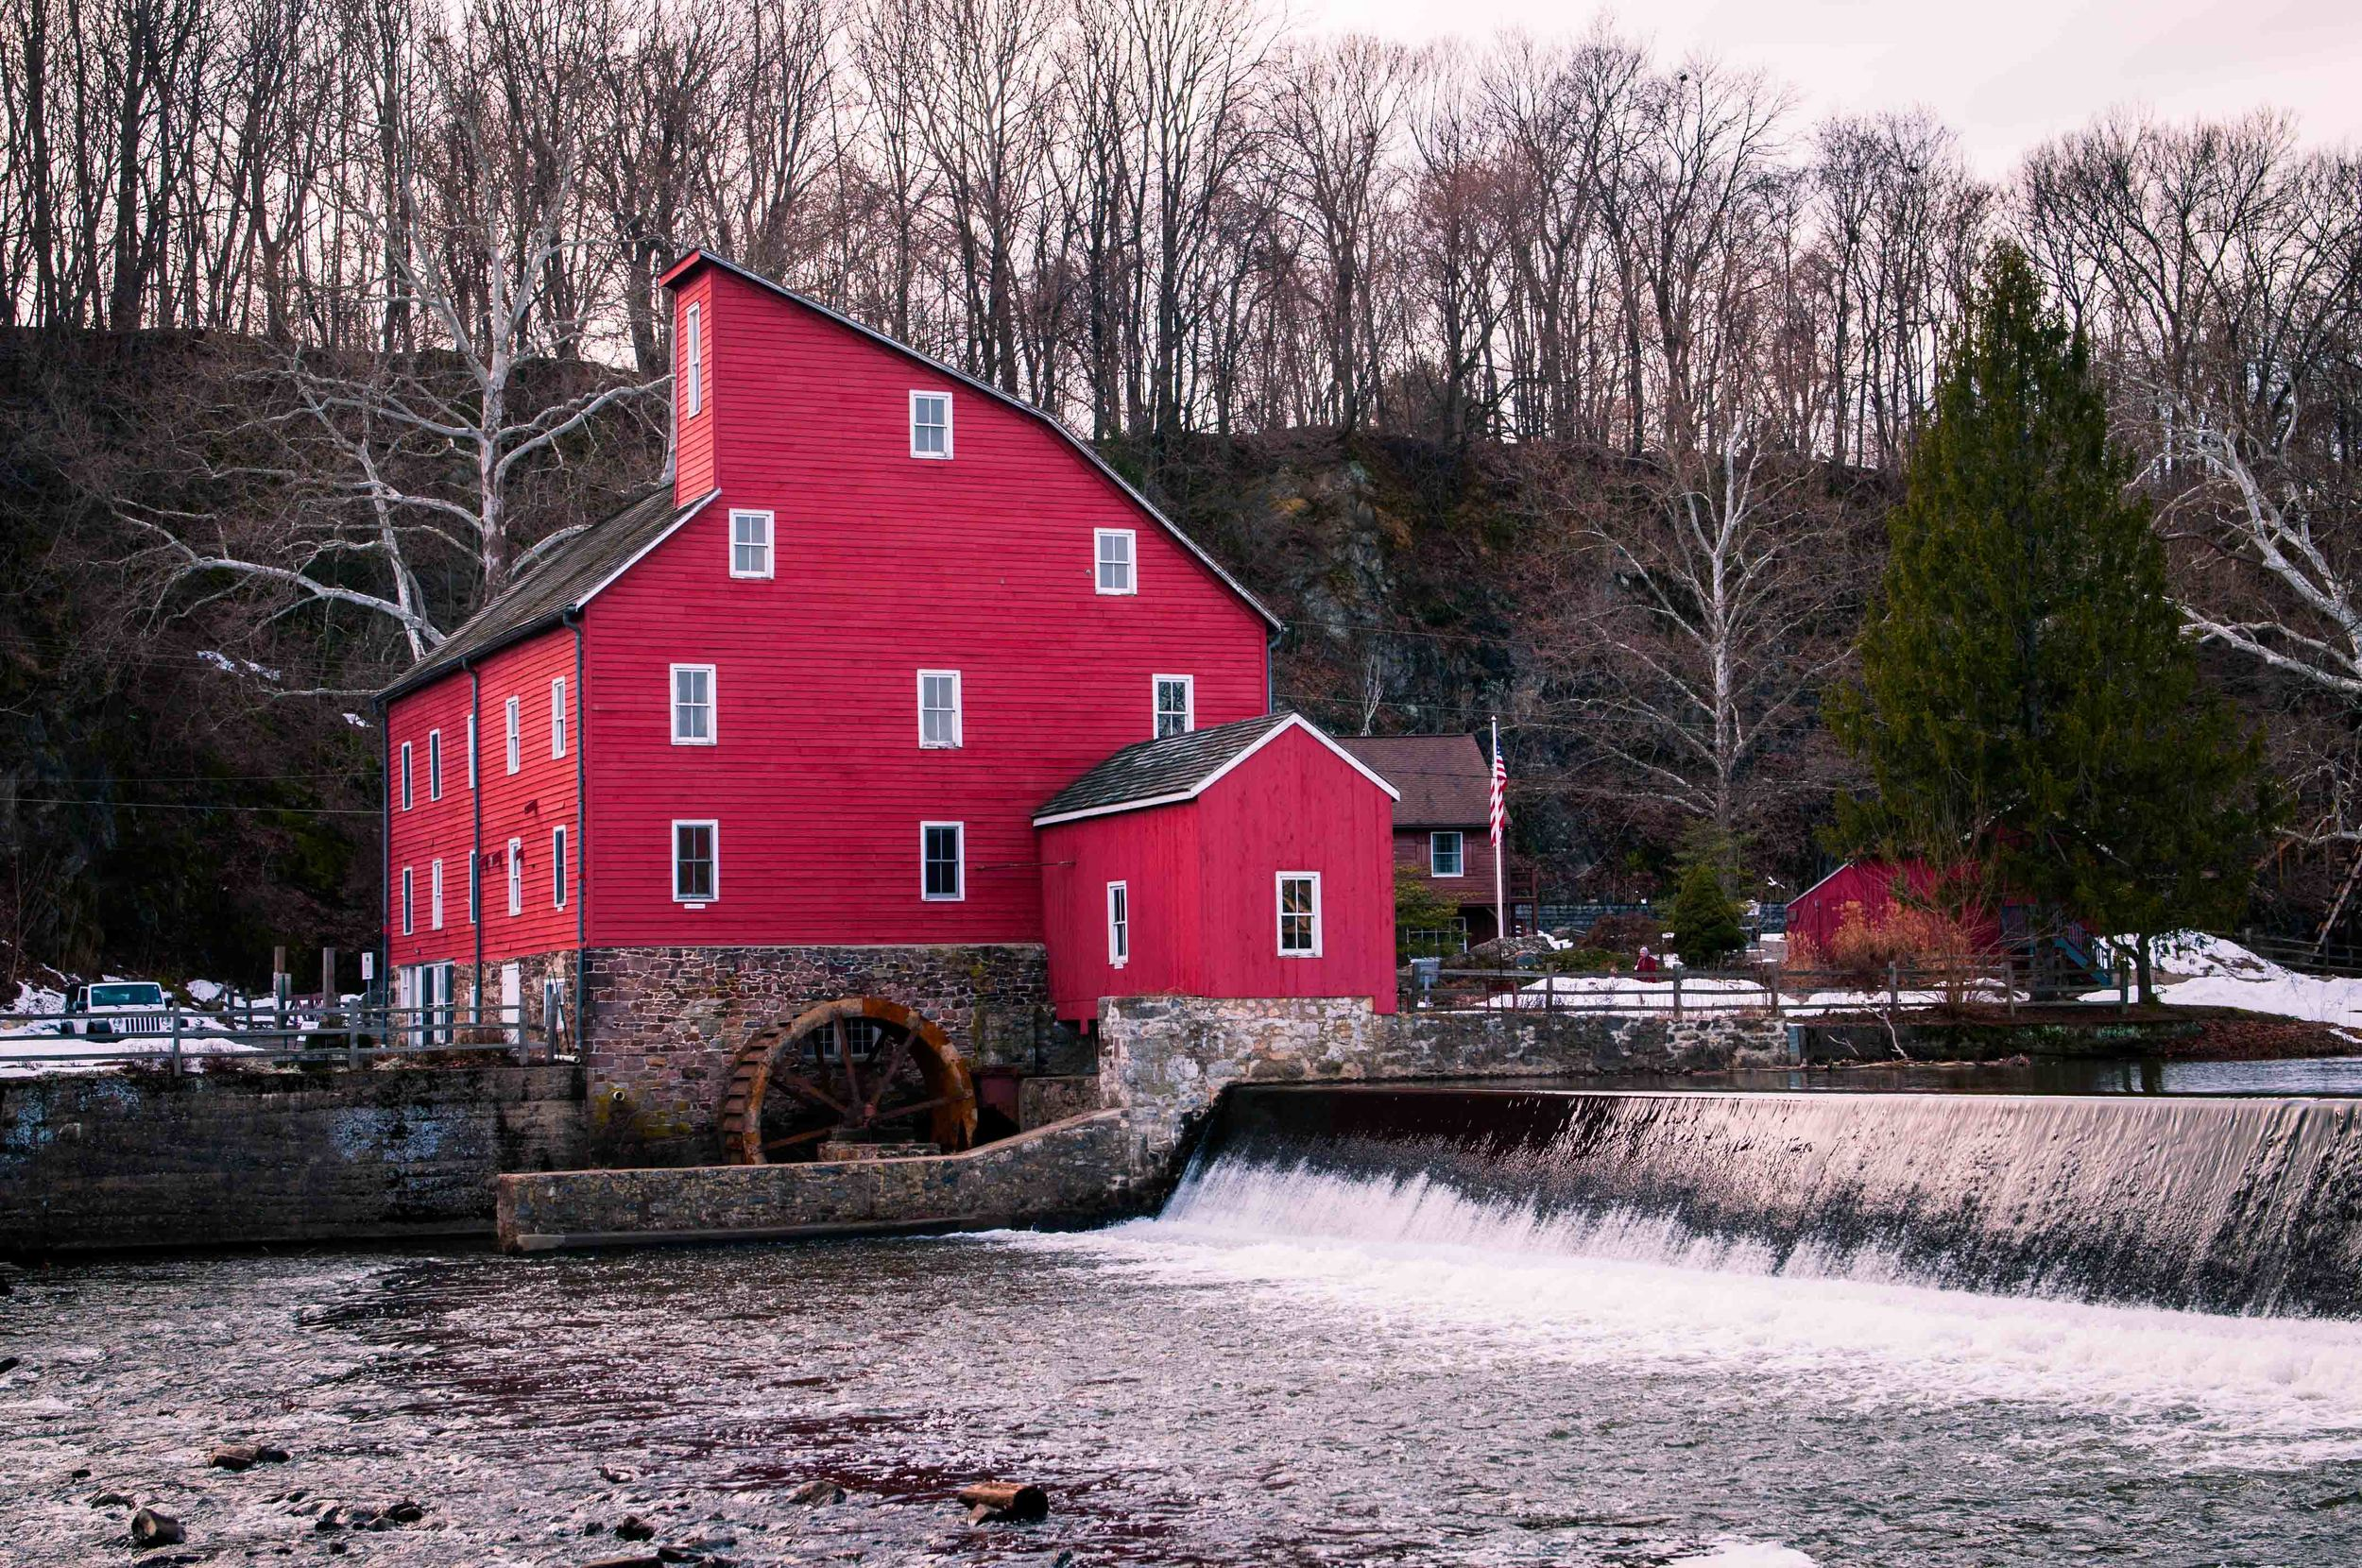 The very red Red Mill barn in Clinton, NJ shot on a cold winter sunset...